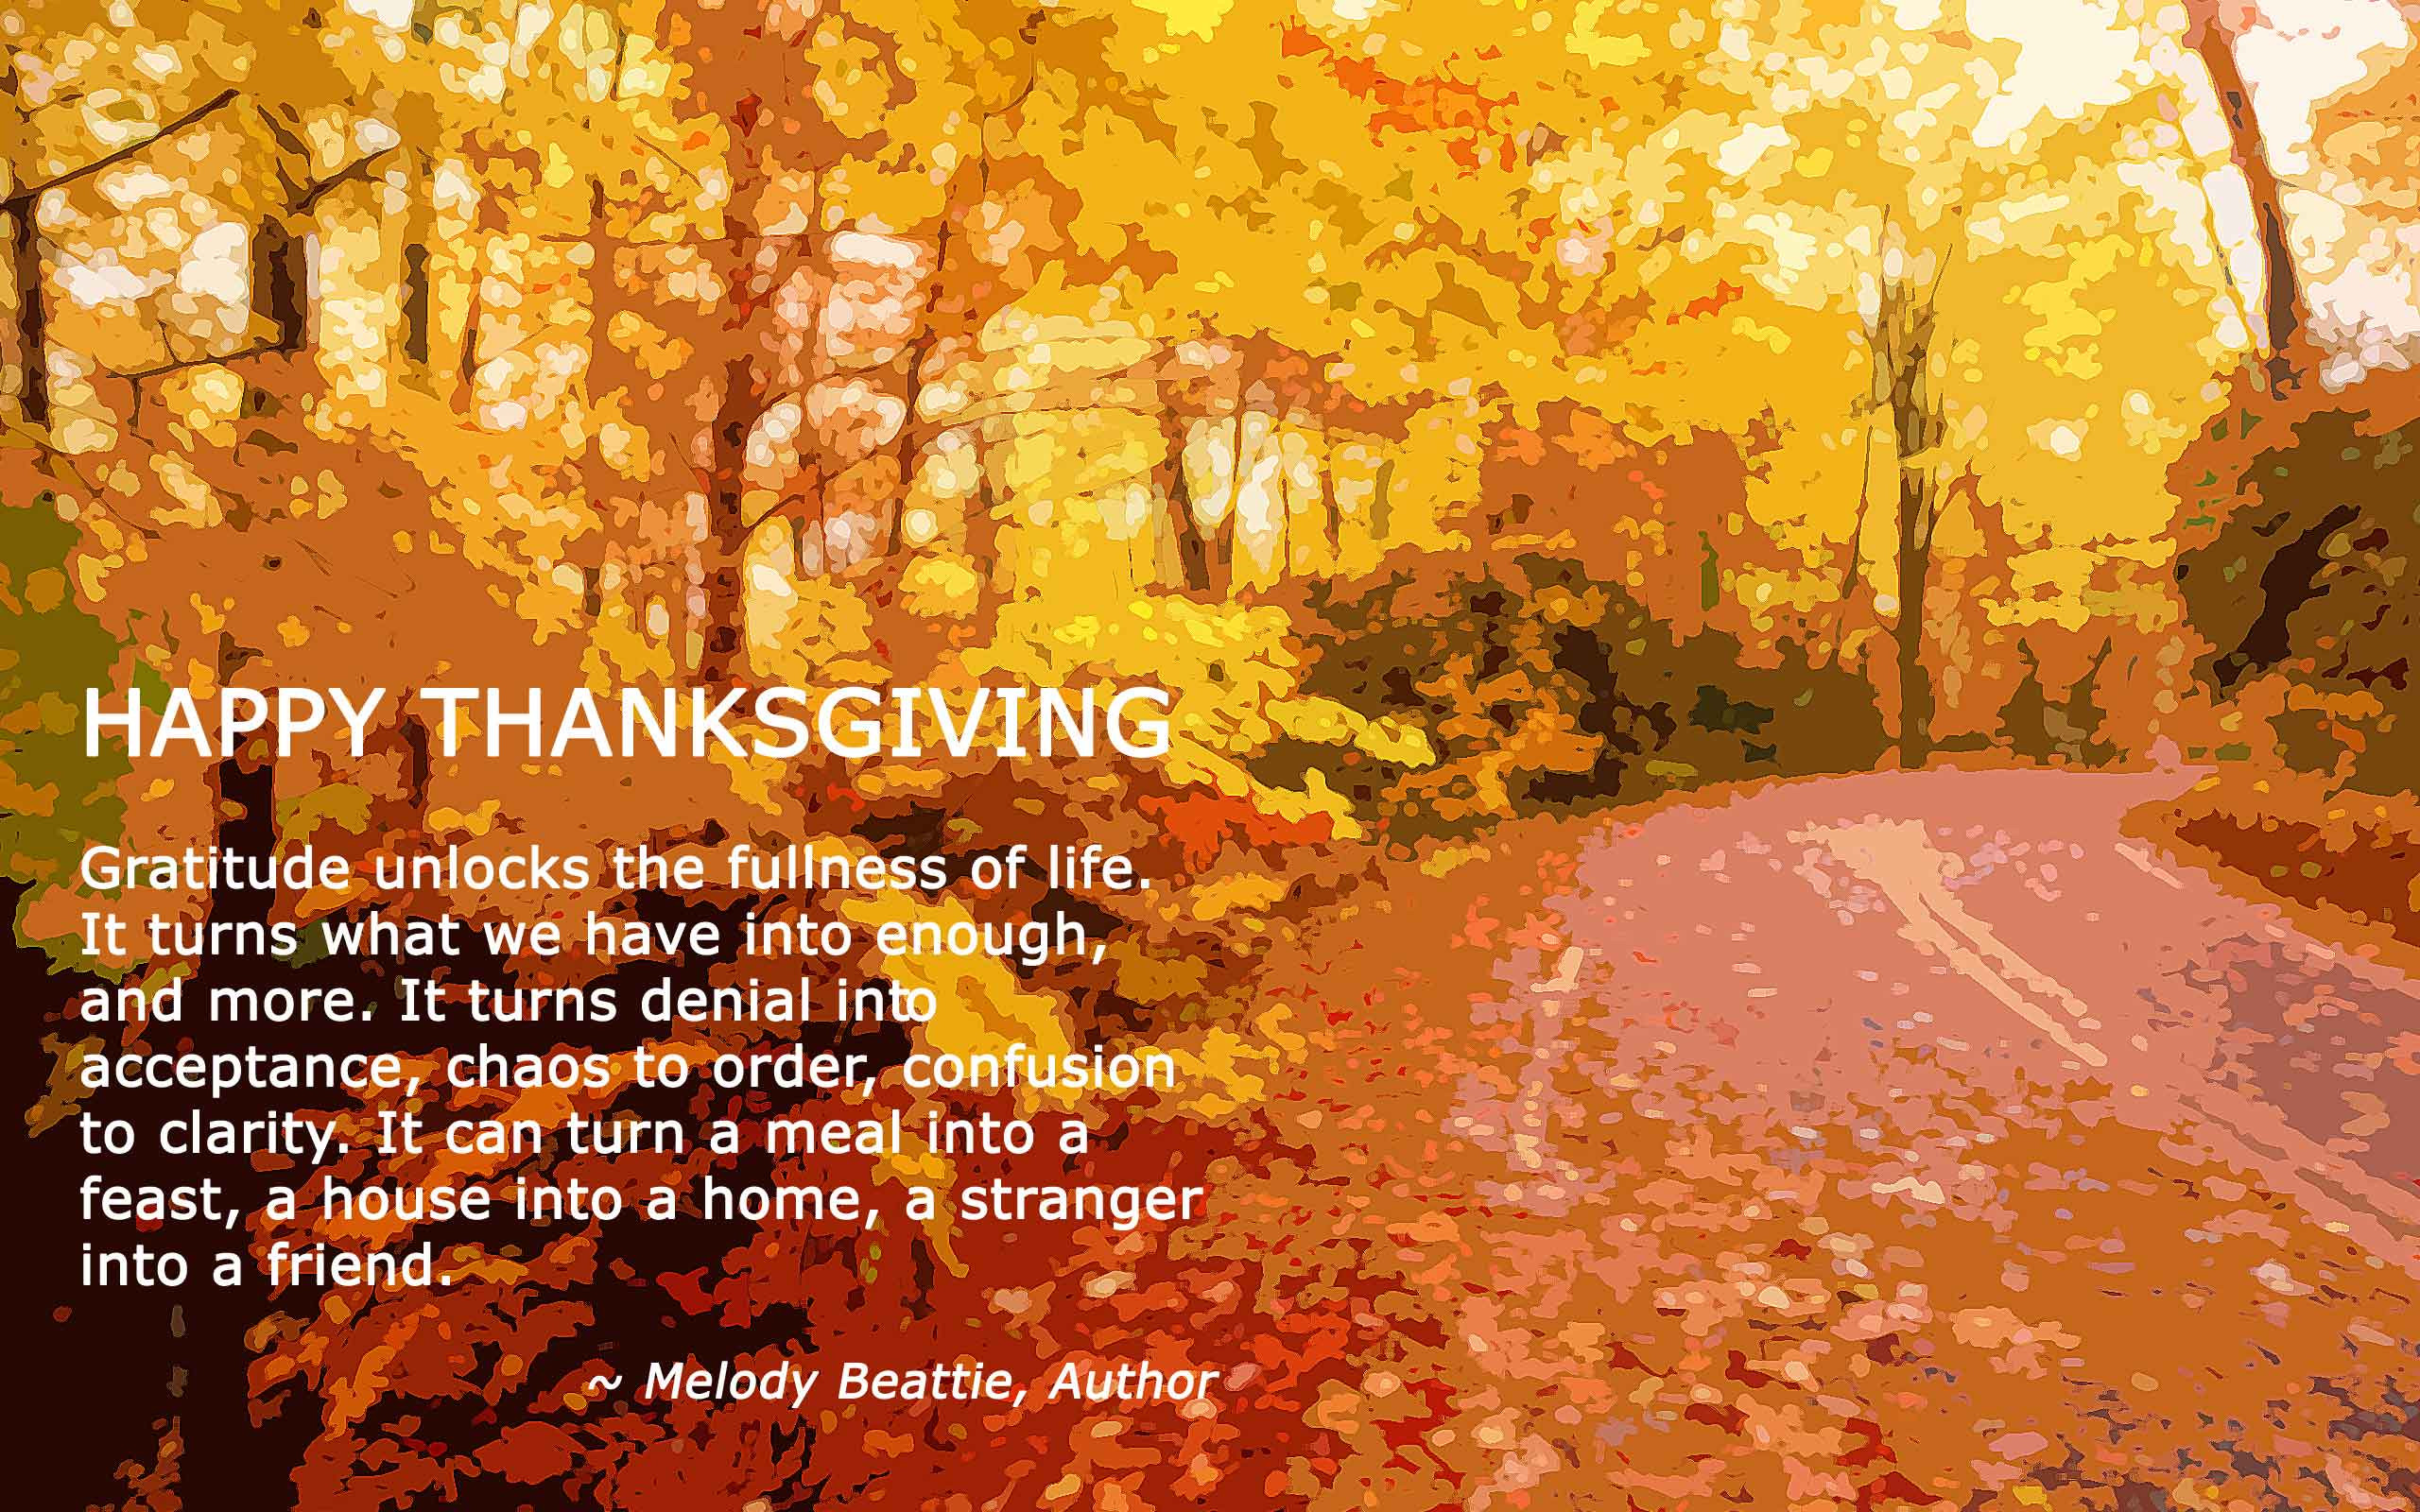 Happy Thanksgiving Quotes For Friends  Happy Thanksgiving Be thankful be joyful and remember